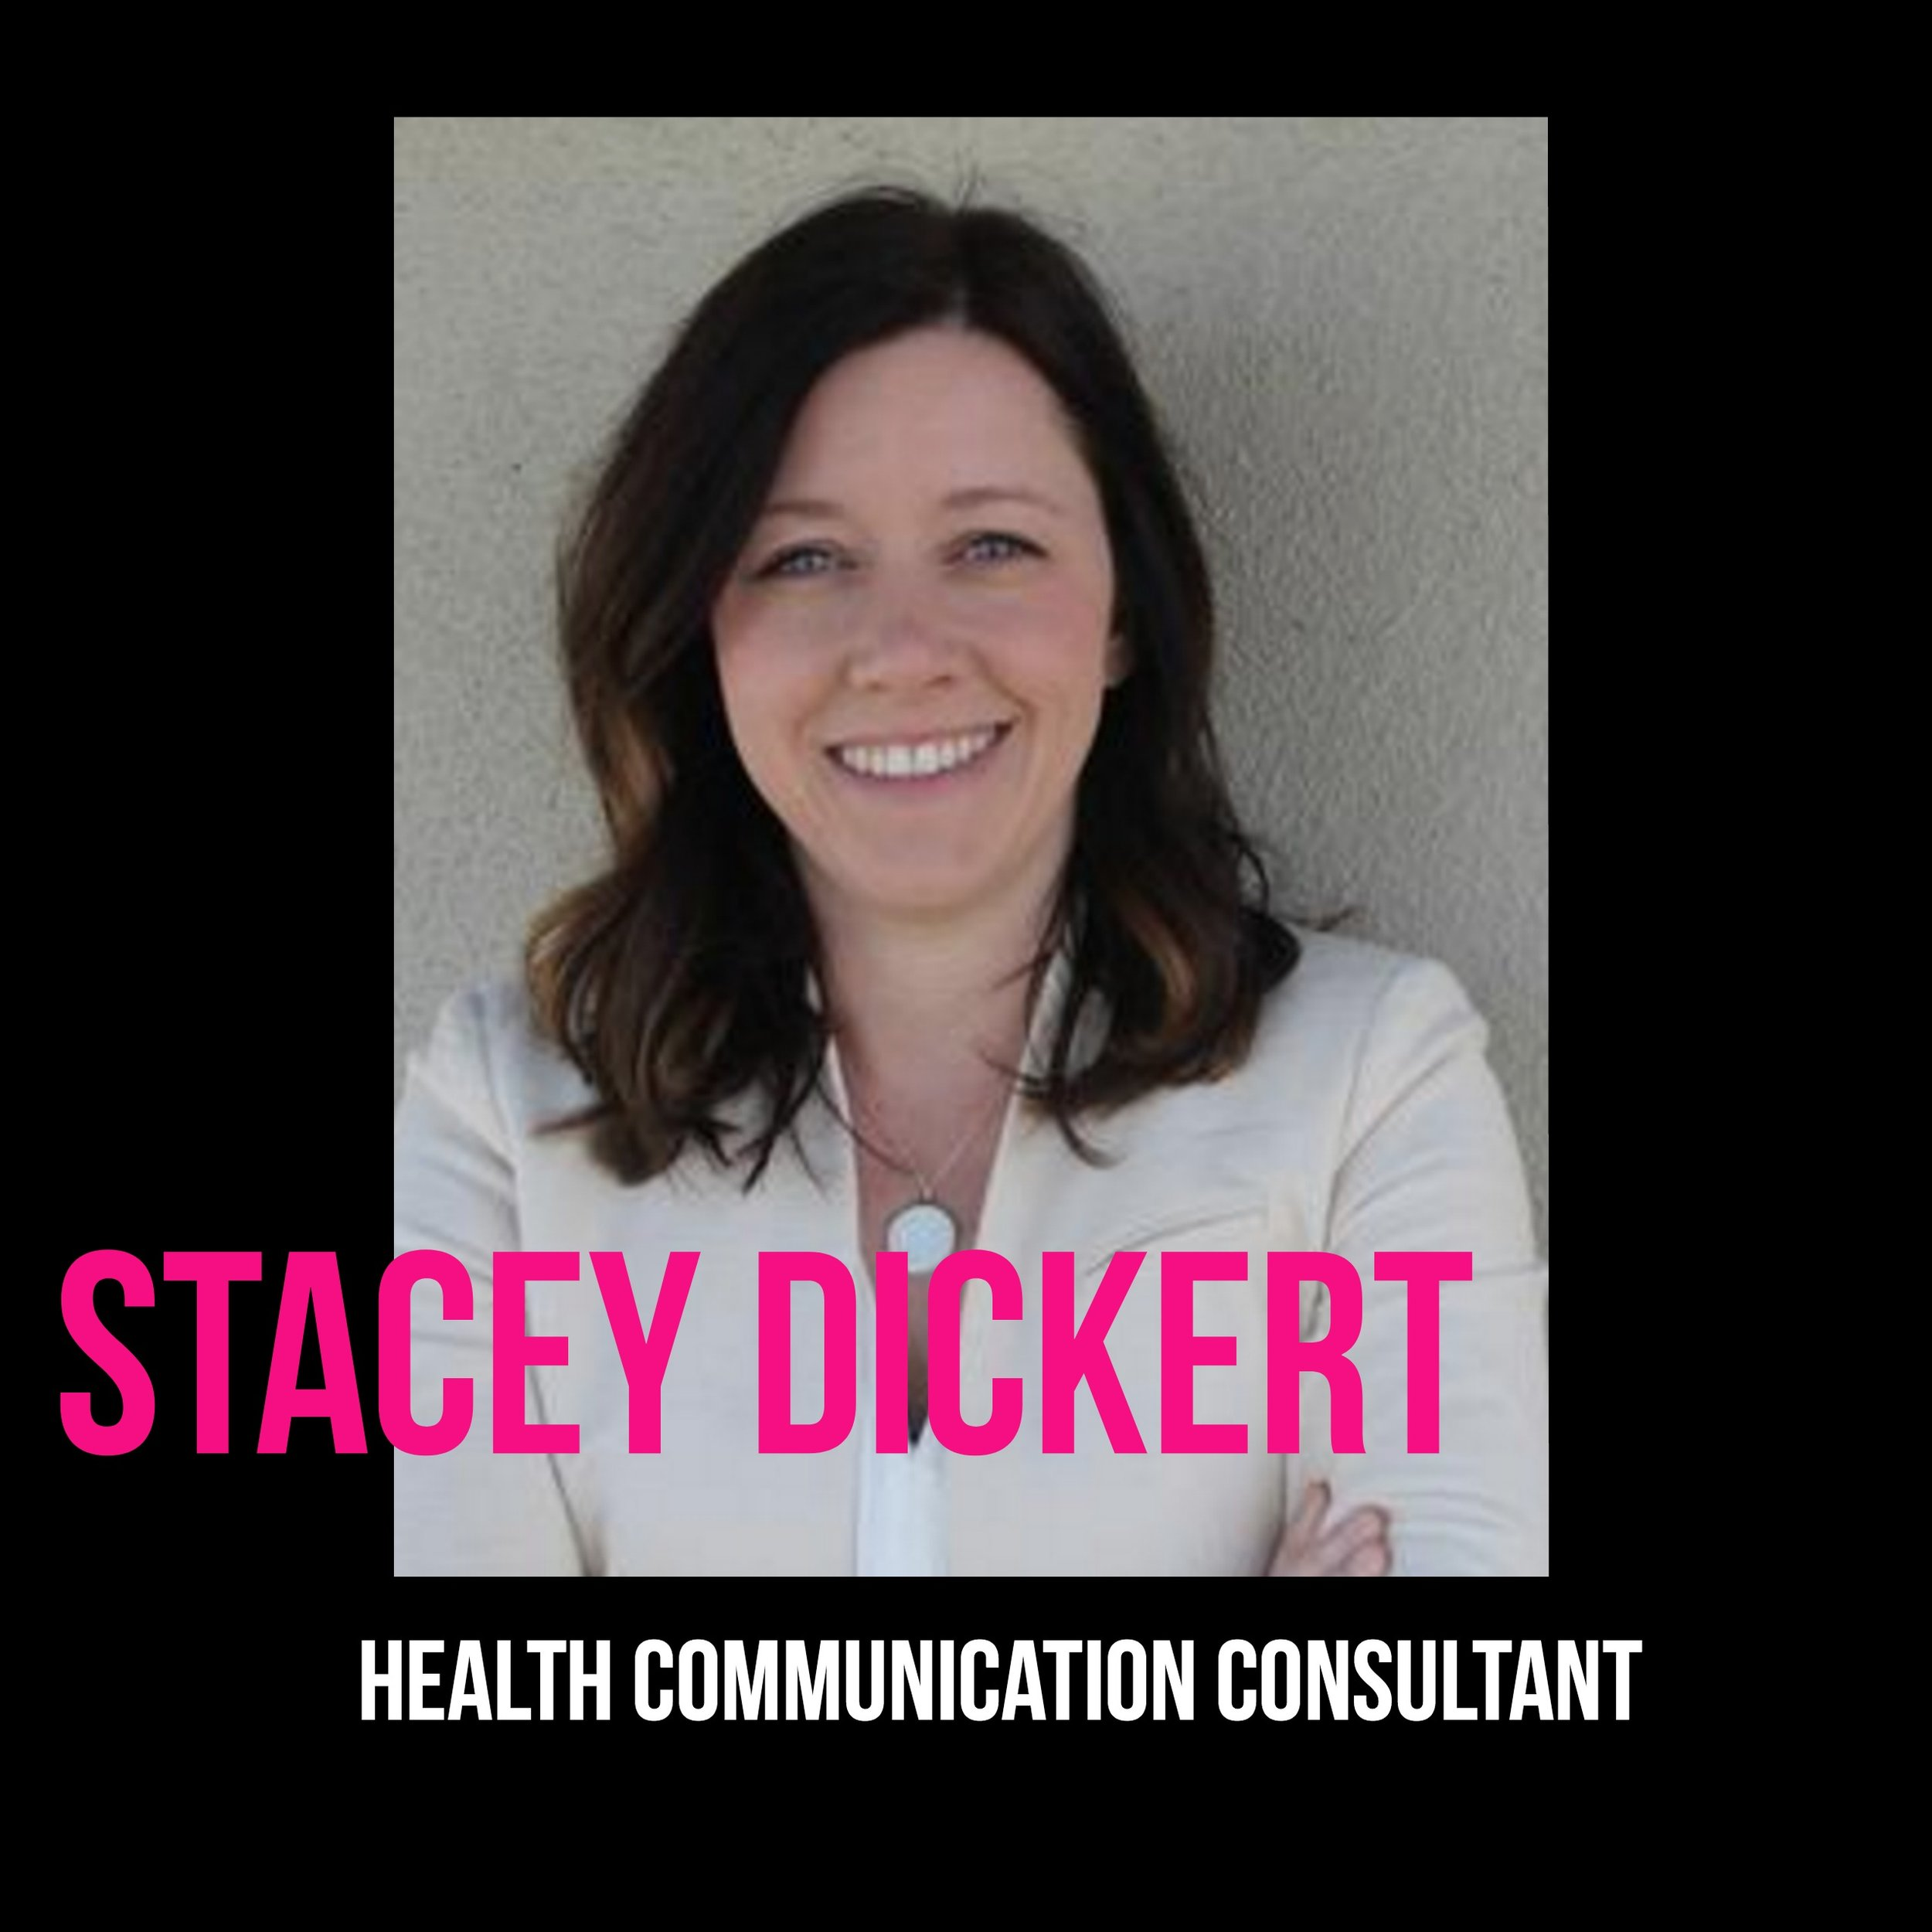 THE JILLS OF ALL TRADES™ Stacey Dickert Health Communication Consultant